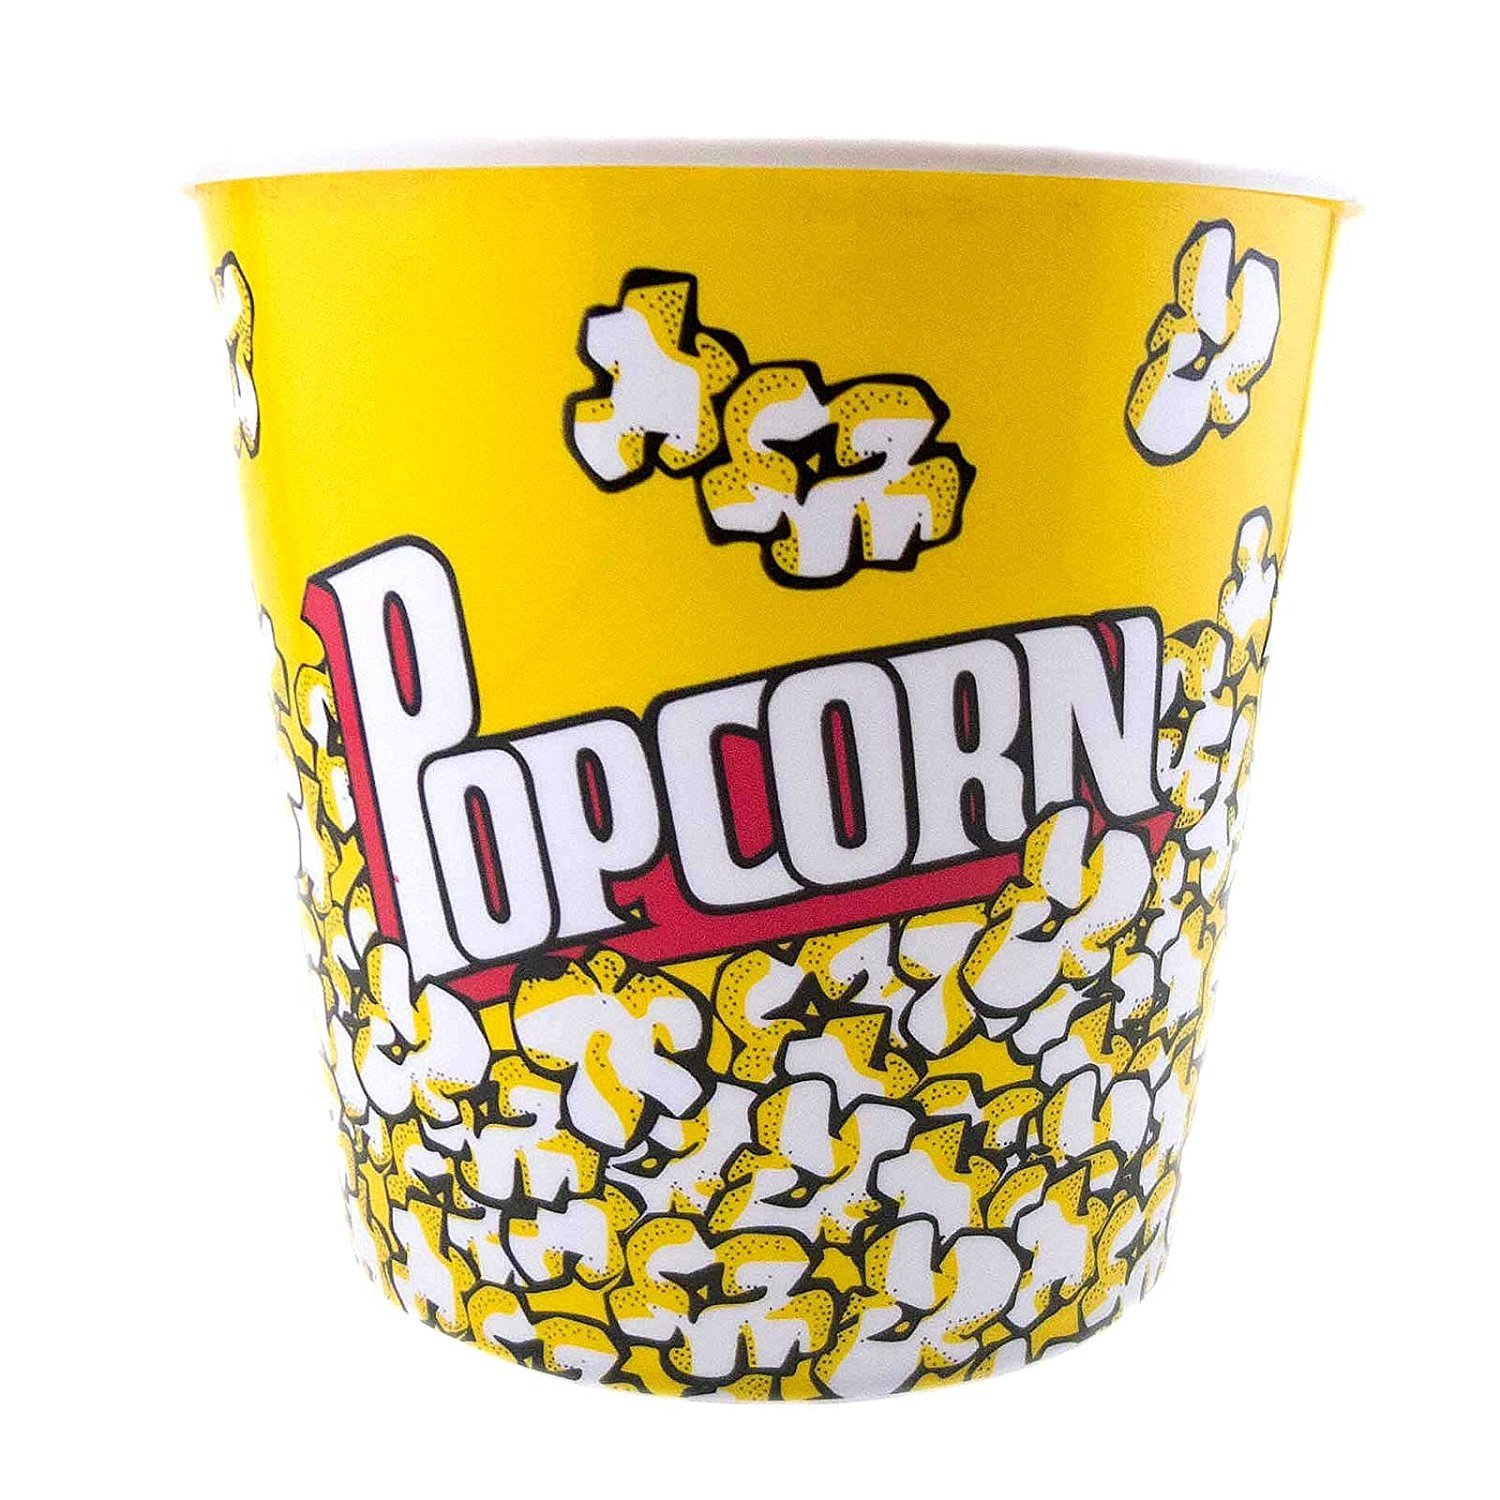 Adorox Plastic Movie Theater Style Popcorn Tubs Bowls Set (Yellow (3 Tubs)) ADX195